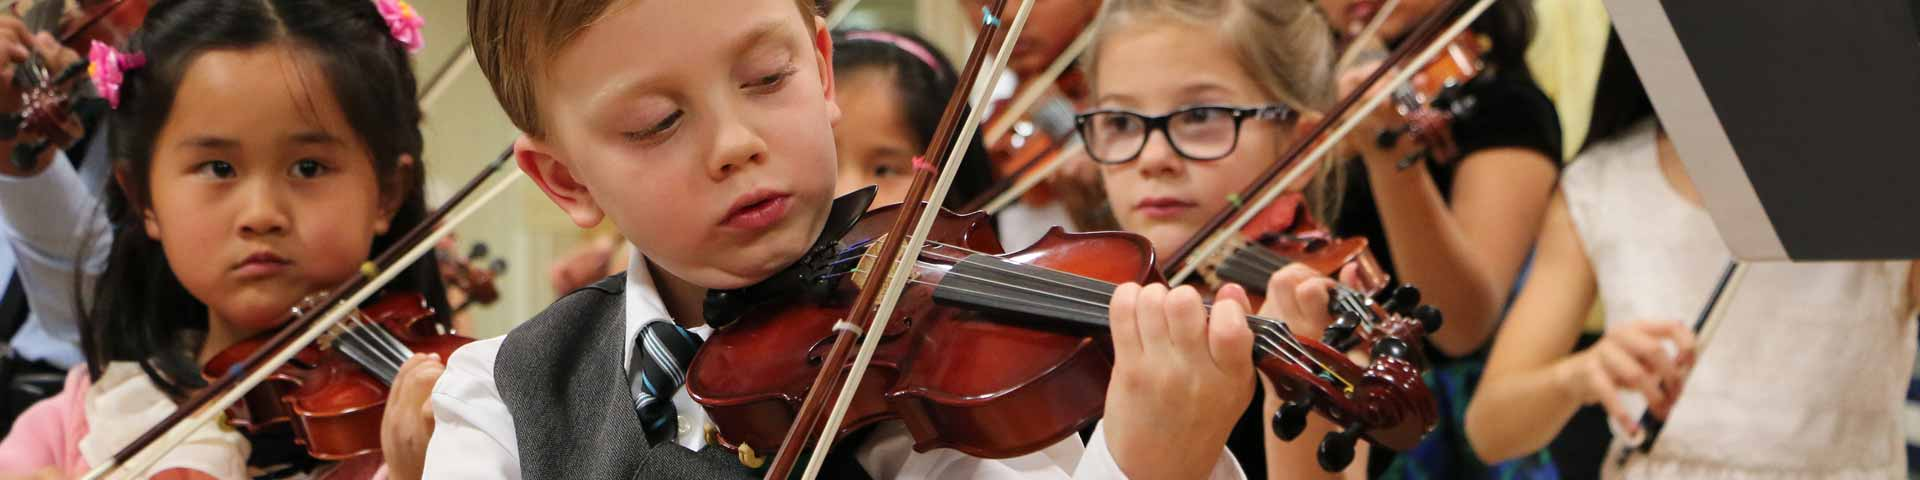 Best Violins for Kids - What Starter Violin to Buy for Your